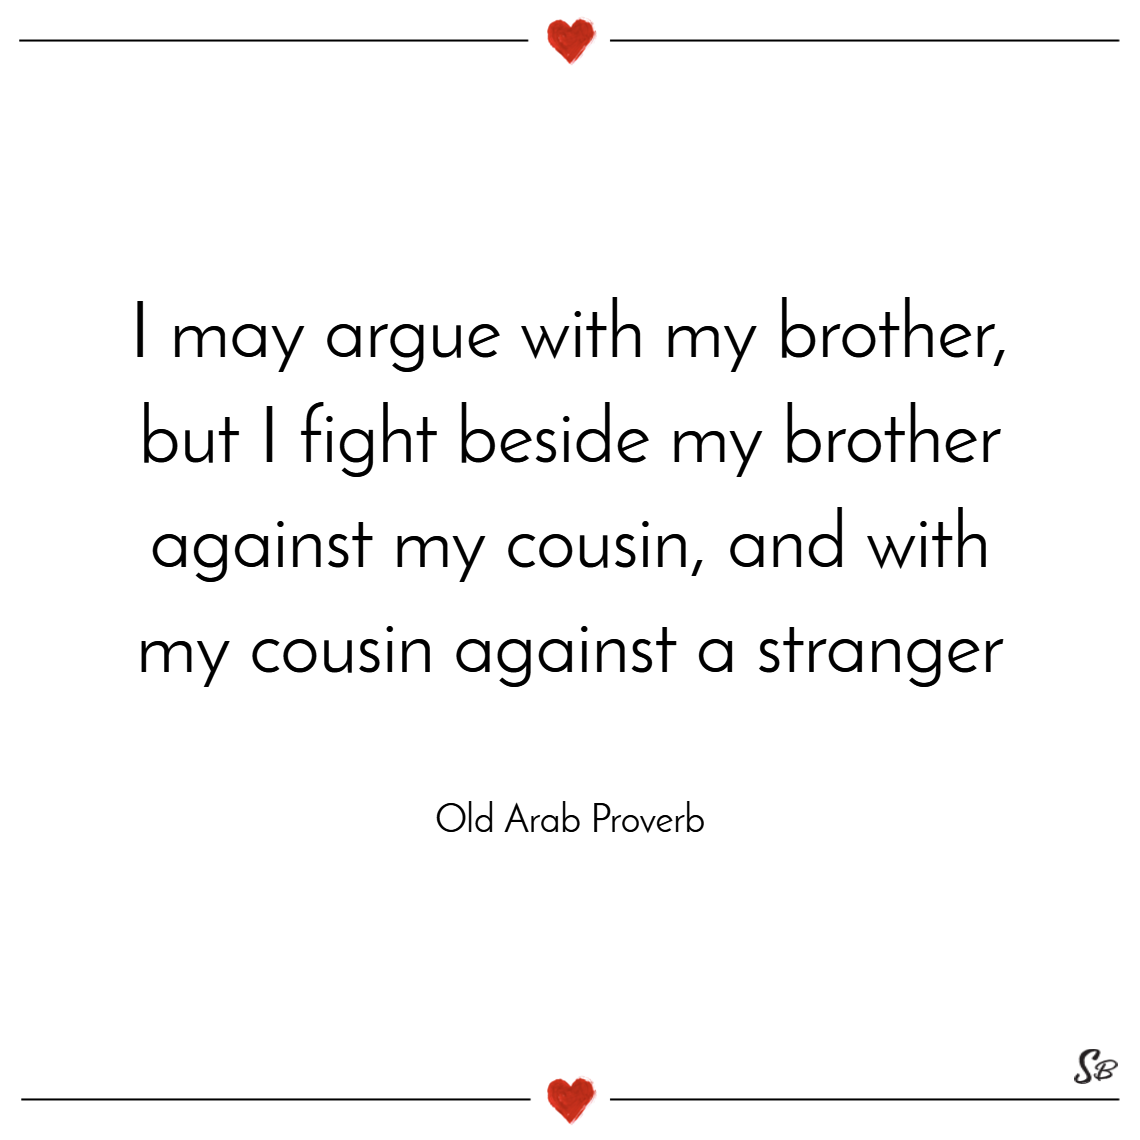 I may argue with my brother, but i fight beside my brother against my cousin, and with my cousin against a stranger. – old arab proverb